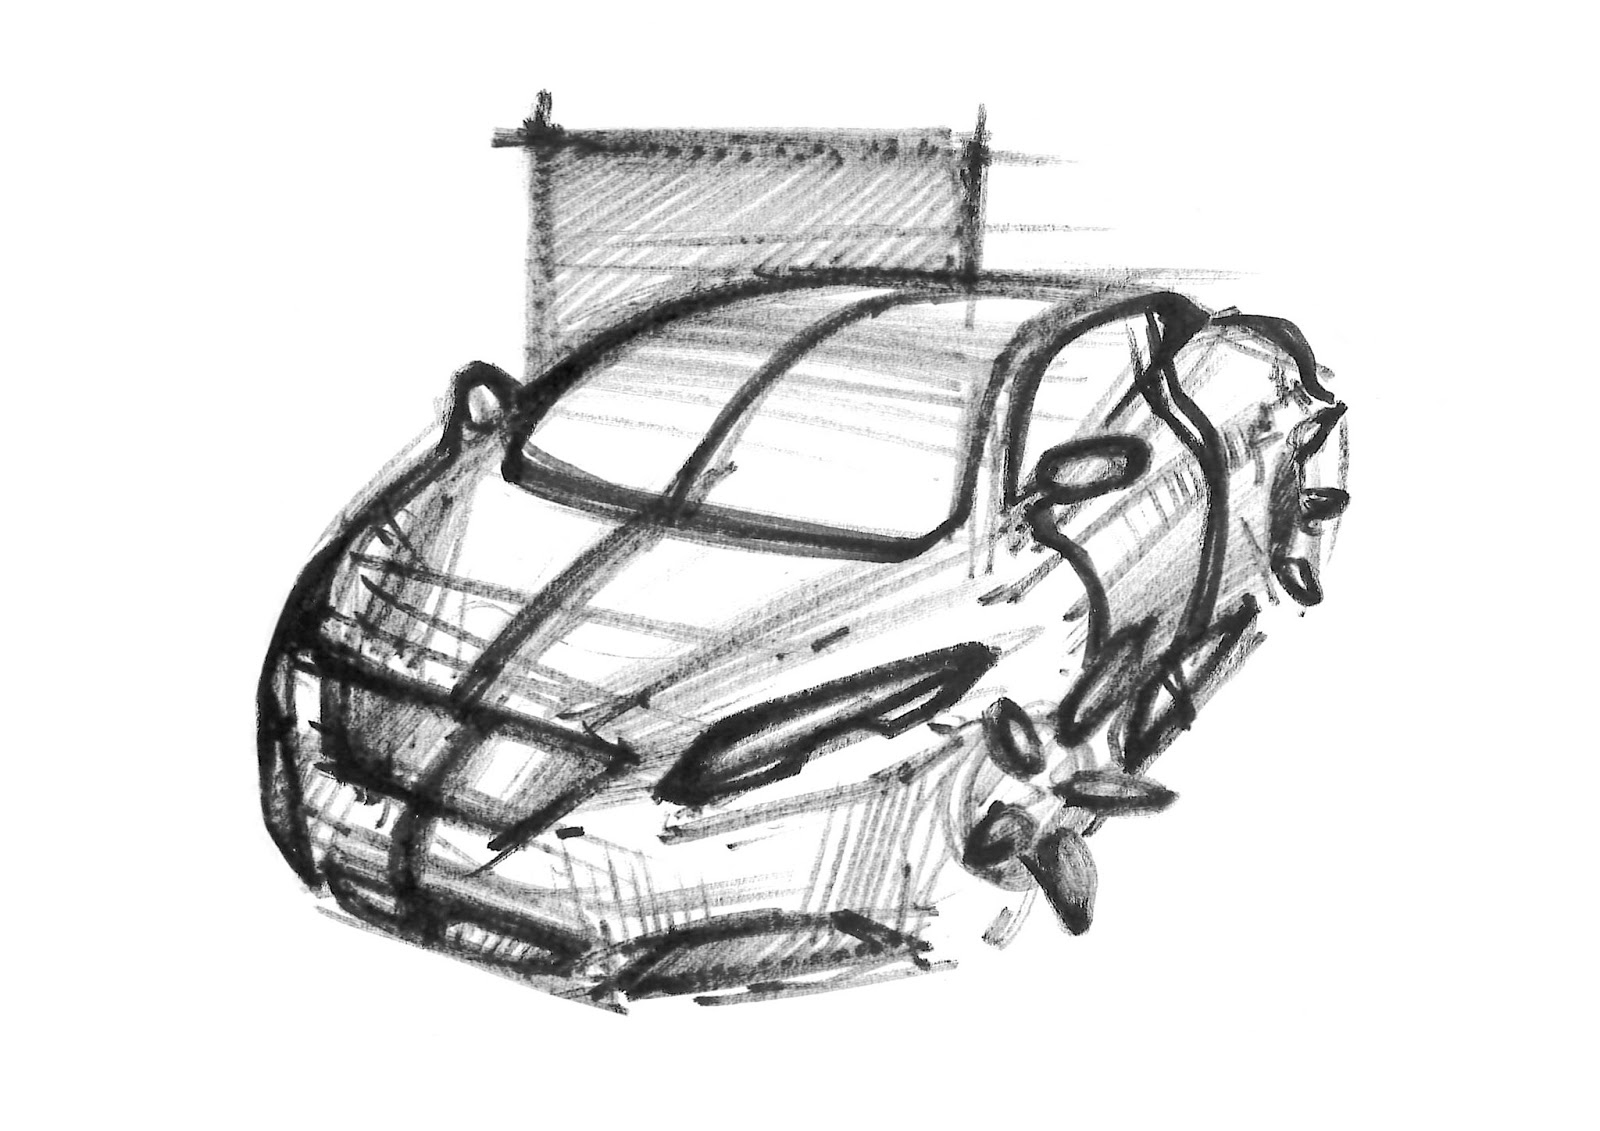 Simon Larsson - Sketchwall: Drying Pen Car Sketch Perspective